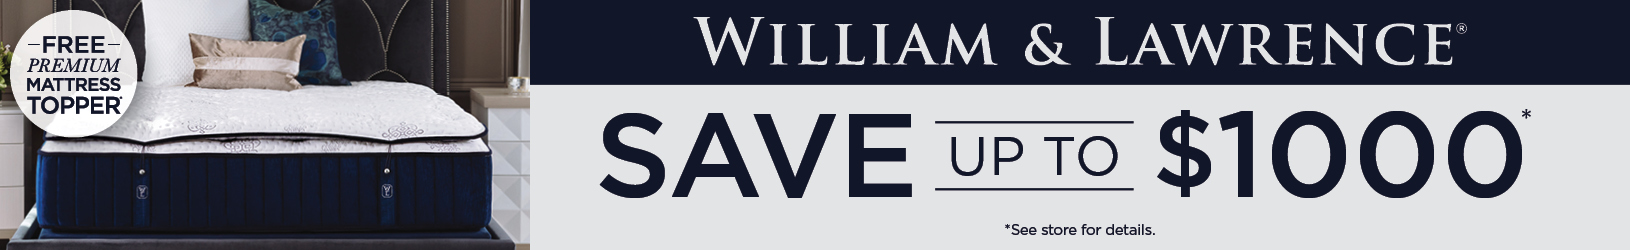 Save Up To $1000 on William & Lawrence